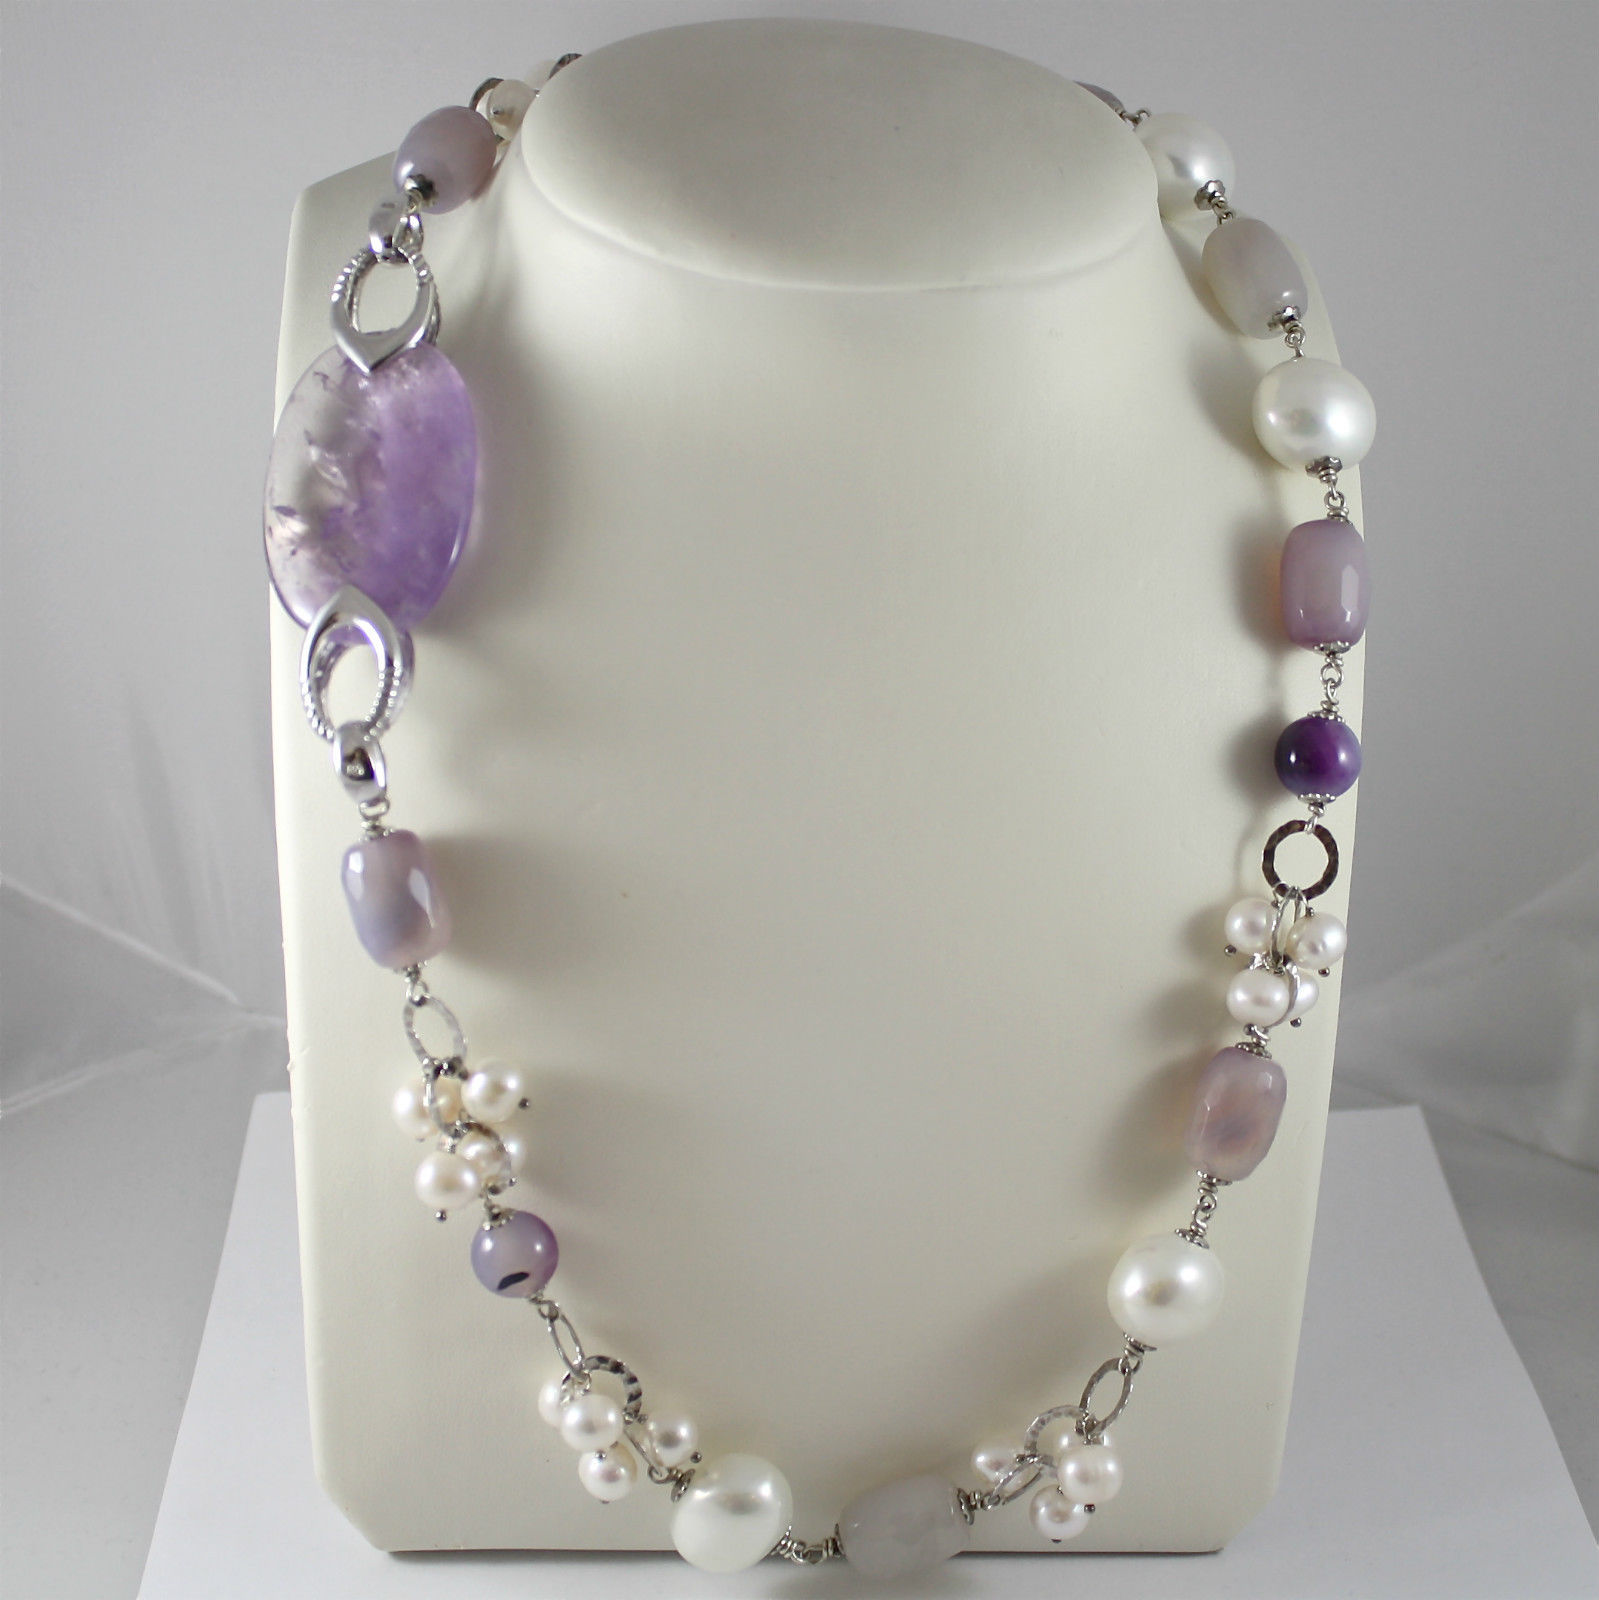 925 Silver Necklace Rhodium, Amethyst, Agate, White Pearls